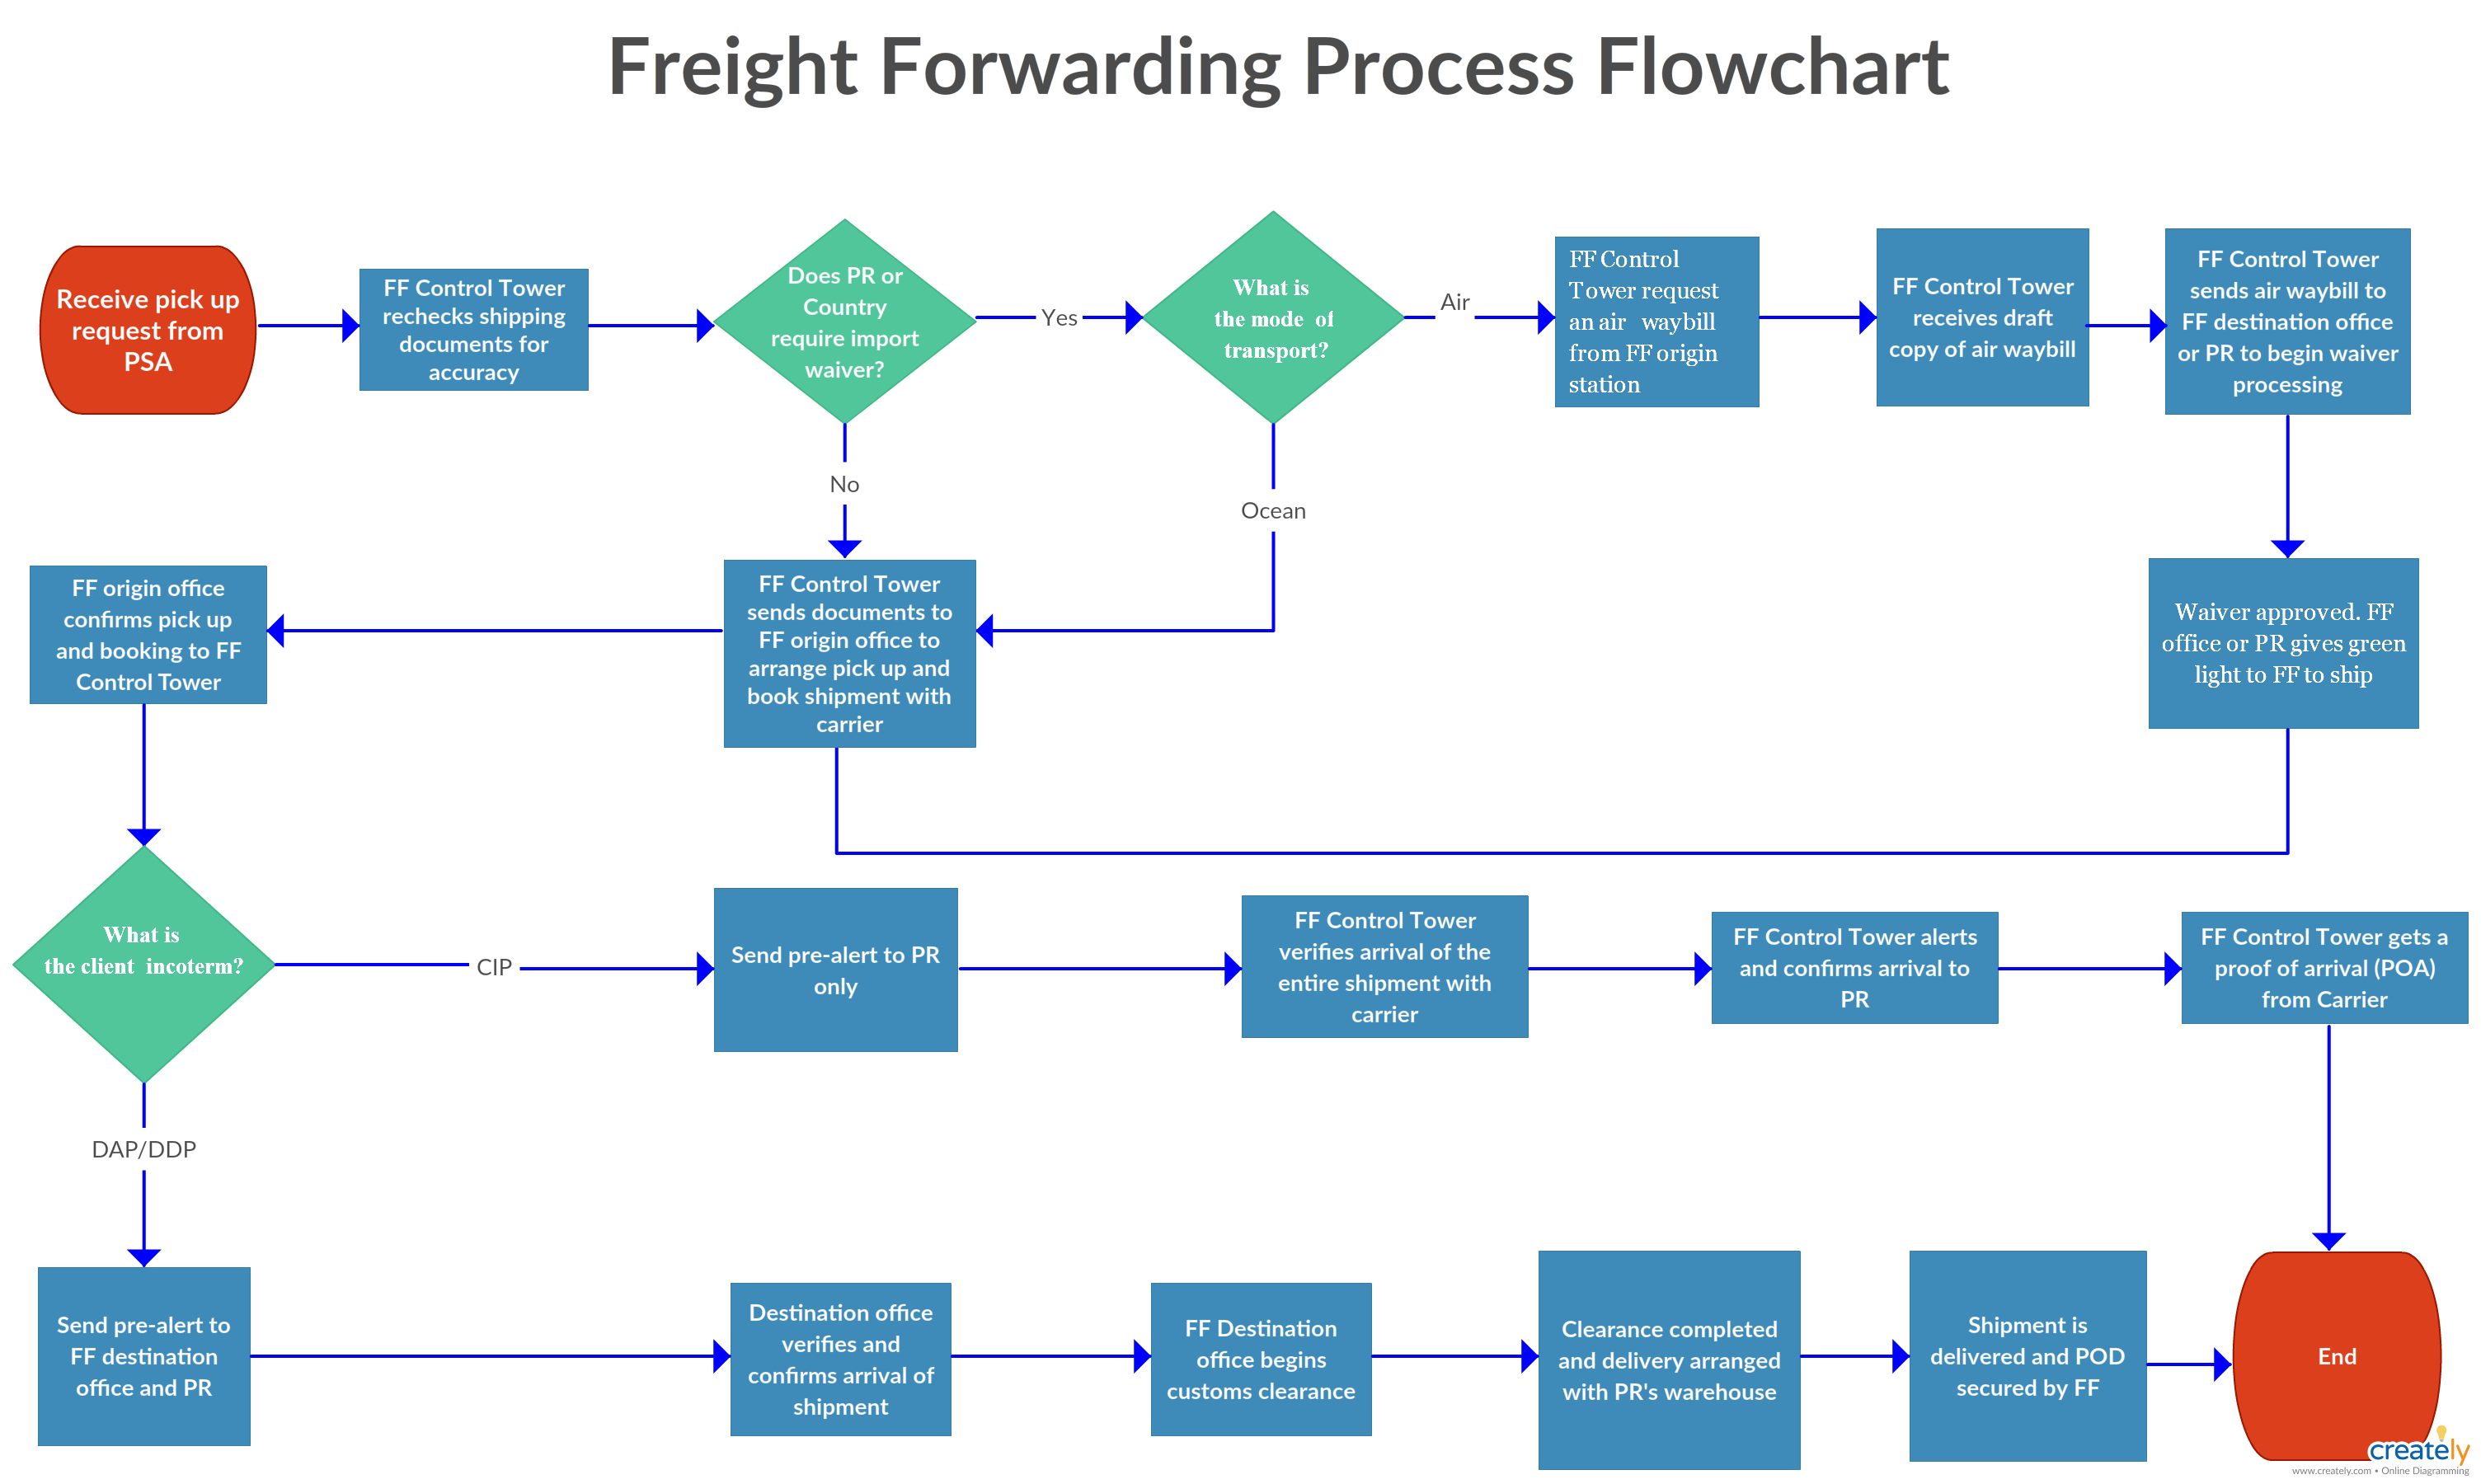 hight resolution of freight forwarding process flowchart the freight forwarding process is the flow of shipment and goods from two destinations carried out by a freight